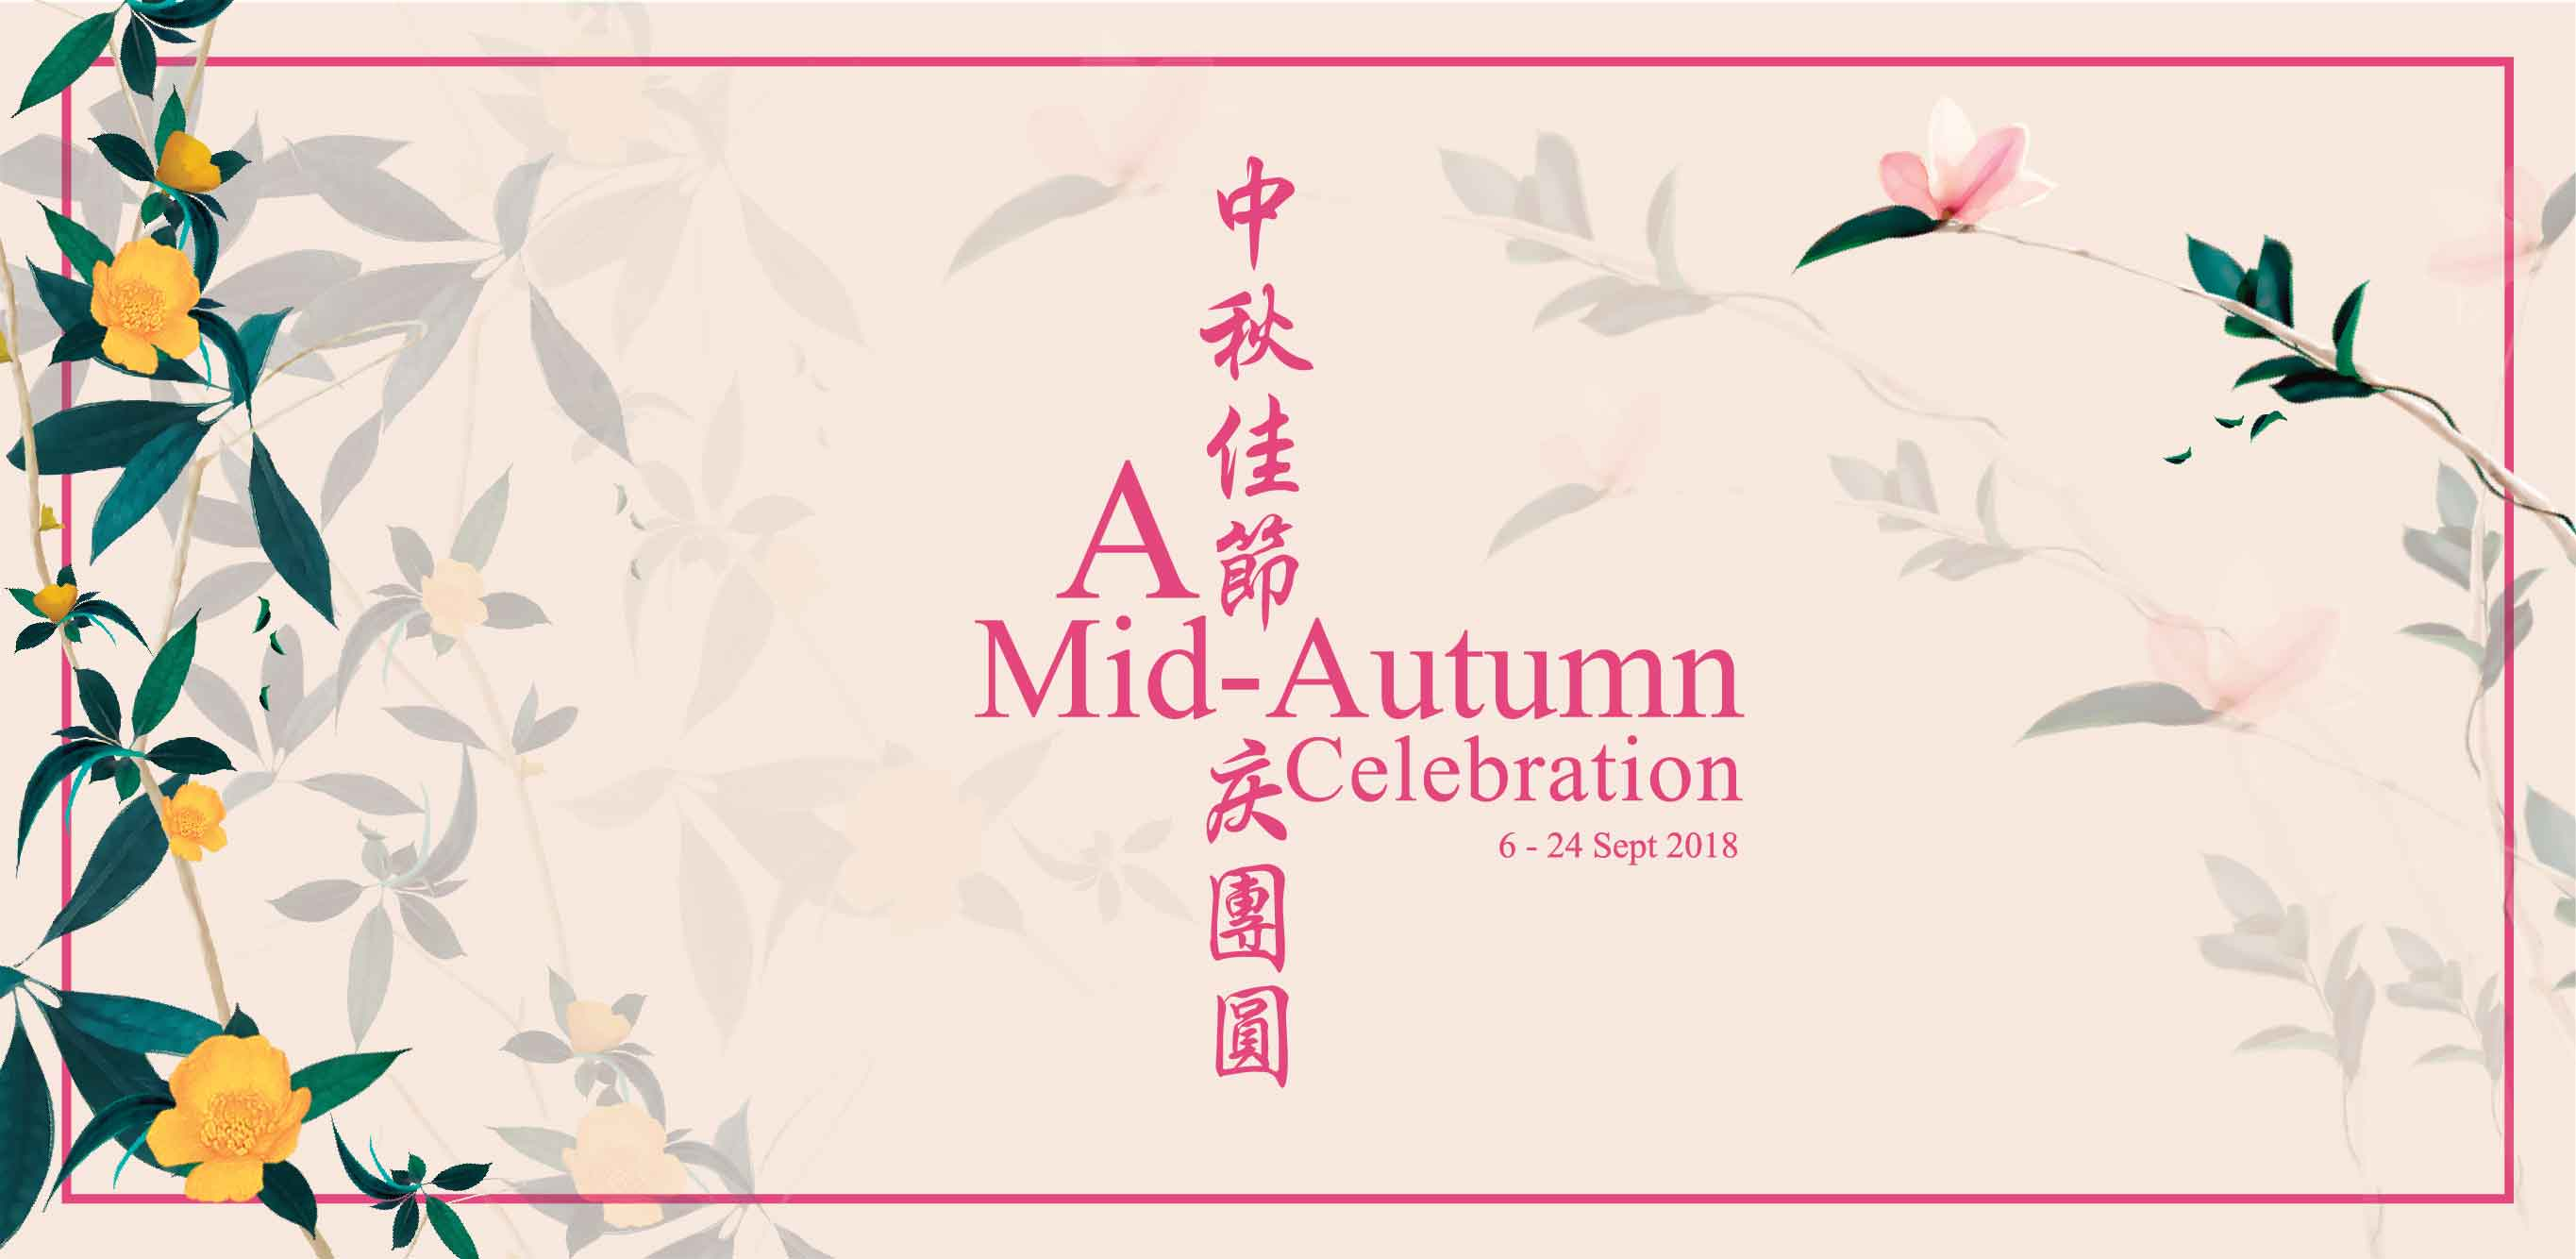 A Mid-Autumn Celebration 2018